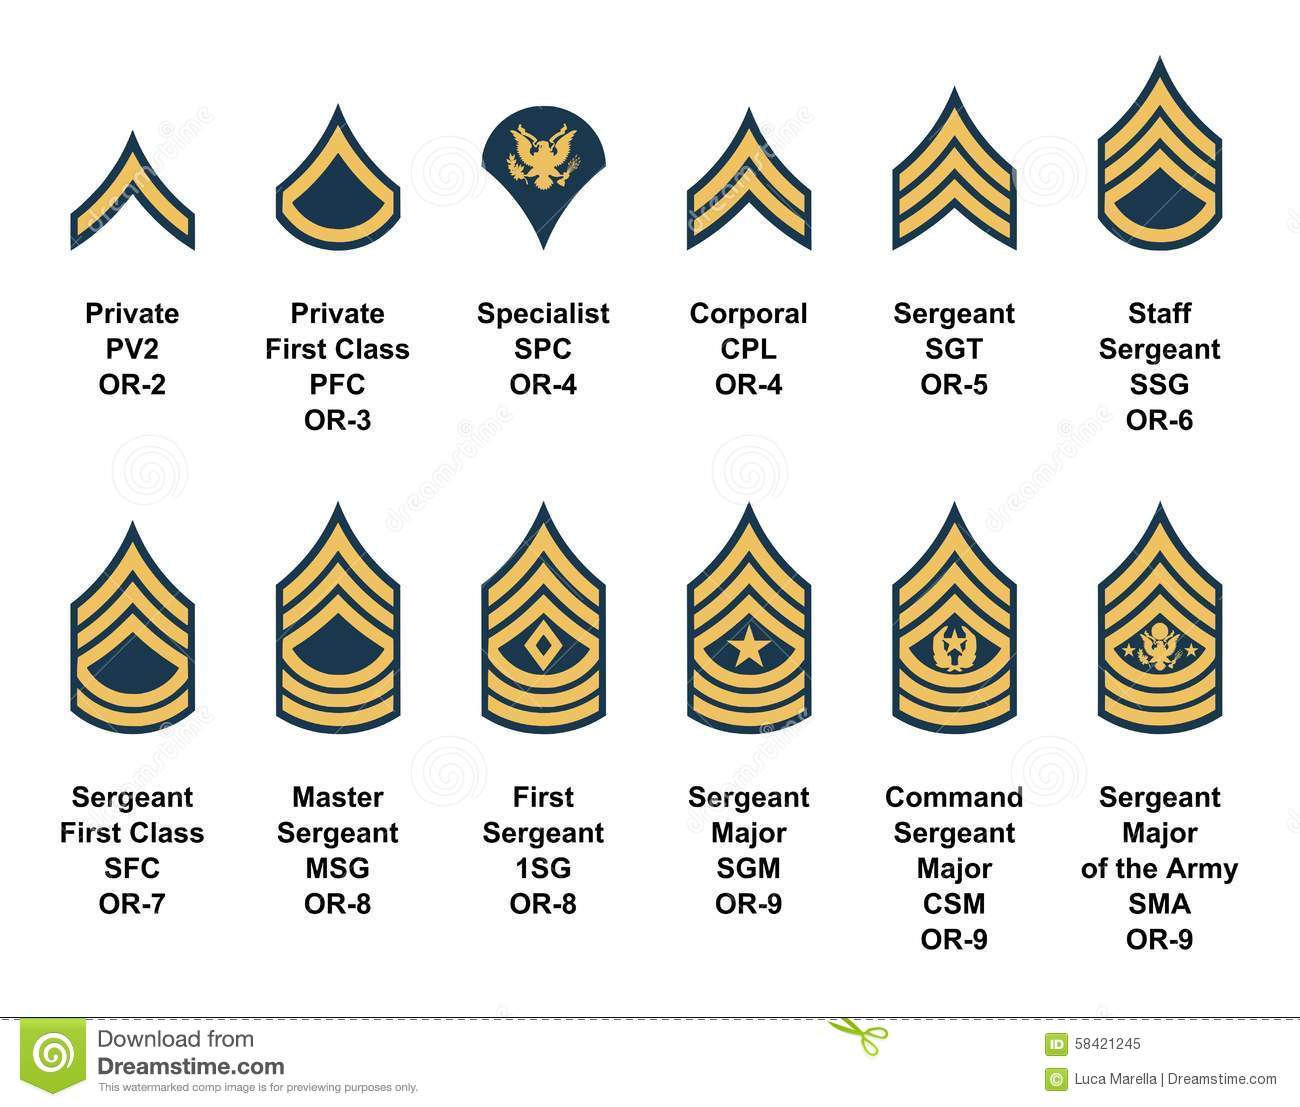 Clipart us army map symbols jpg download Army Enlisted Rank Insignia Stock Vector - Image: 58421245 jpg download